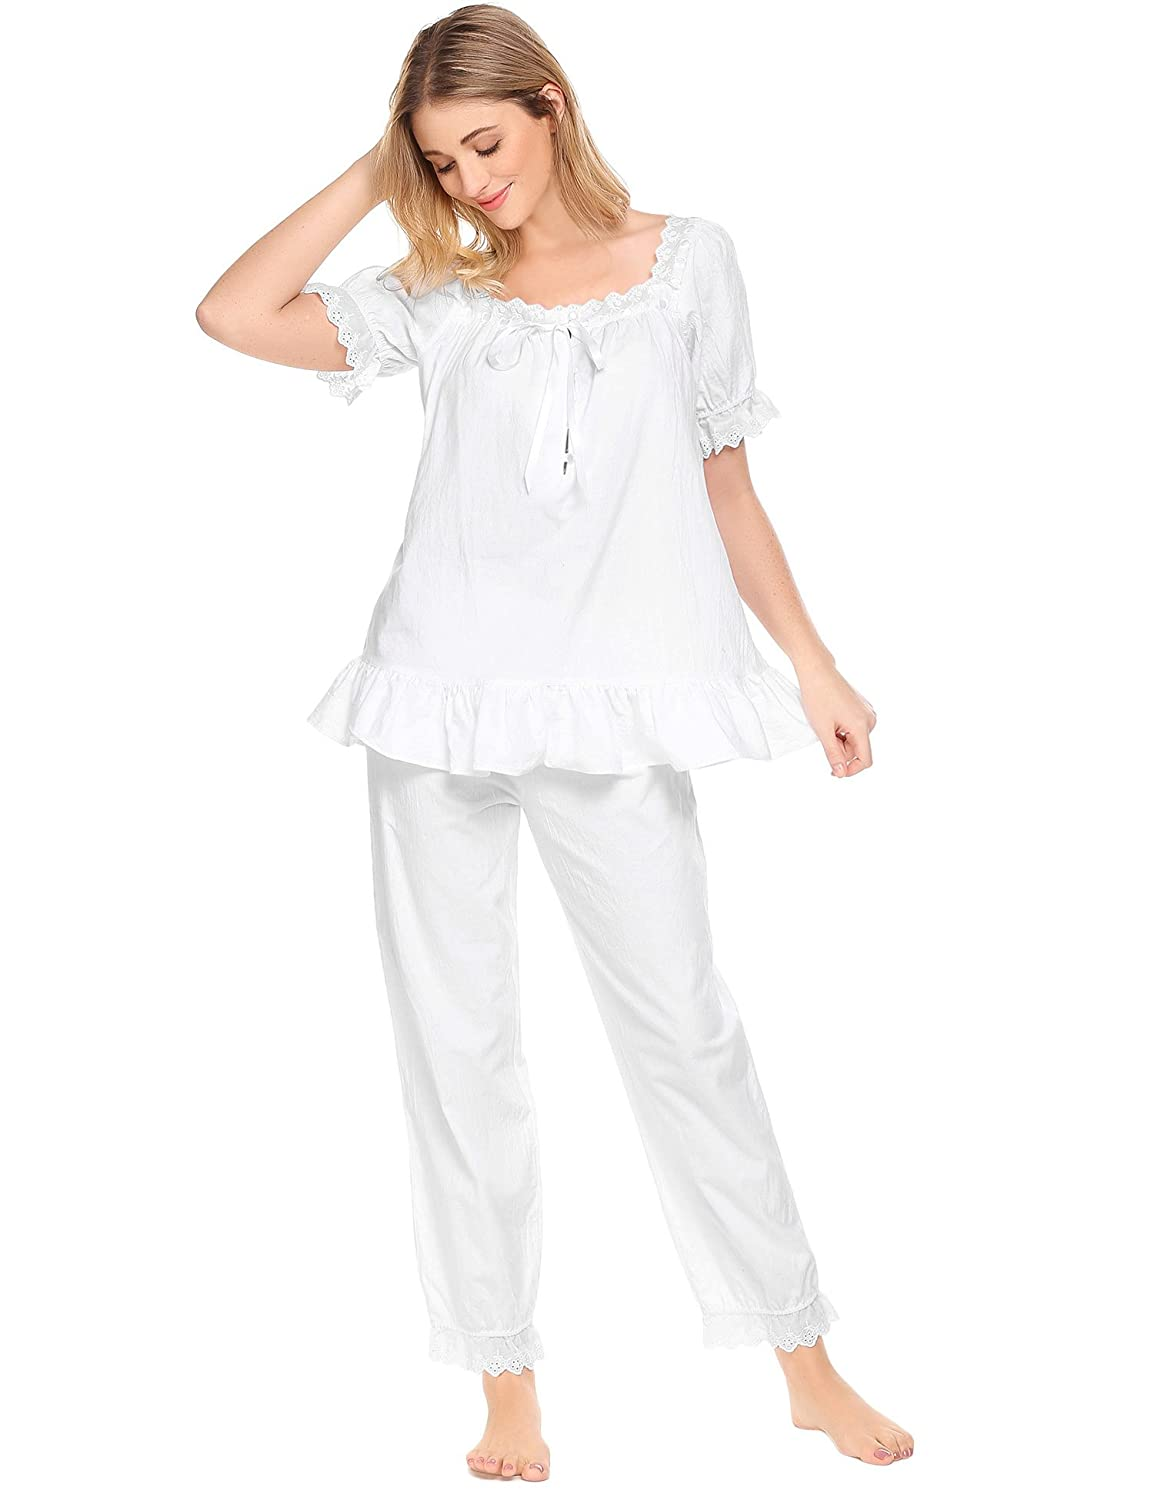 76b83d790e8 Avidlove Womens Cotton Pjs Victorian Vintage White Long Sleeve Pajama Set  Sleepwear at Amazon Women s Clothing store